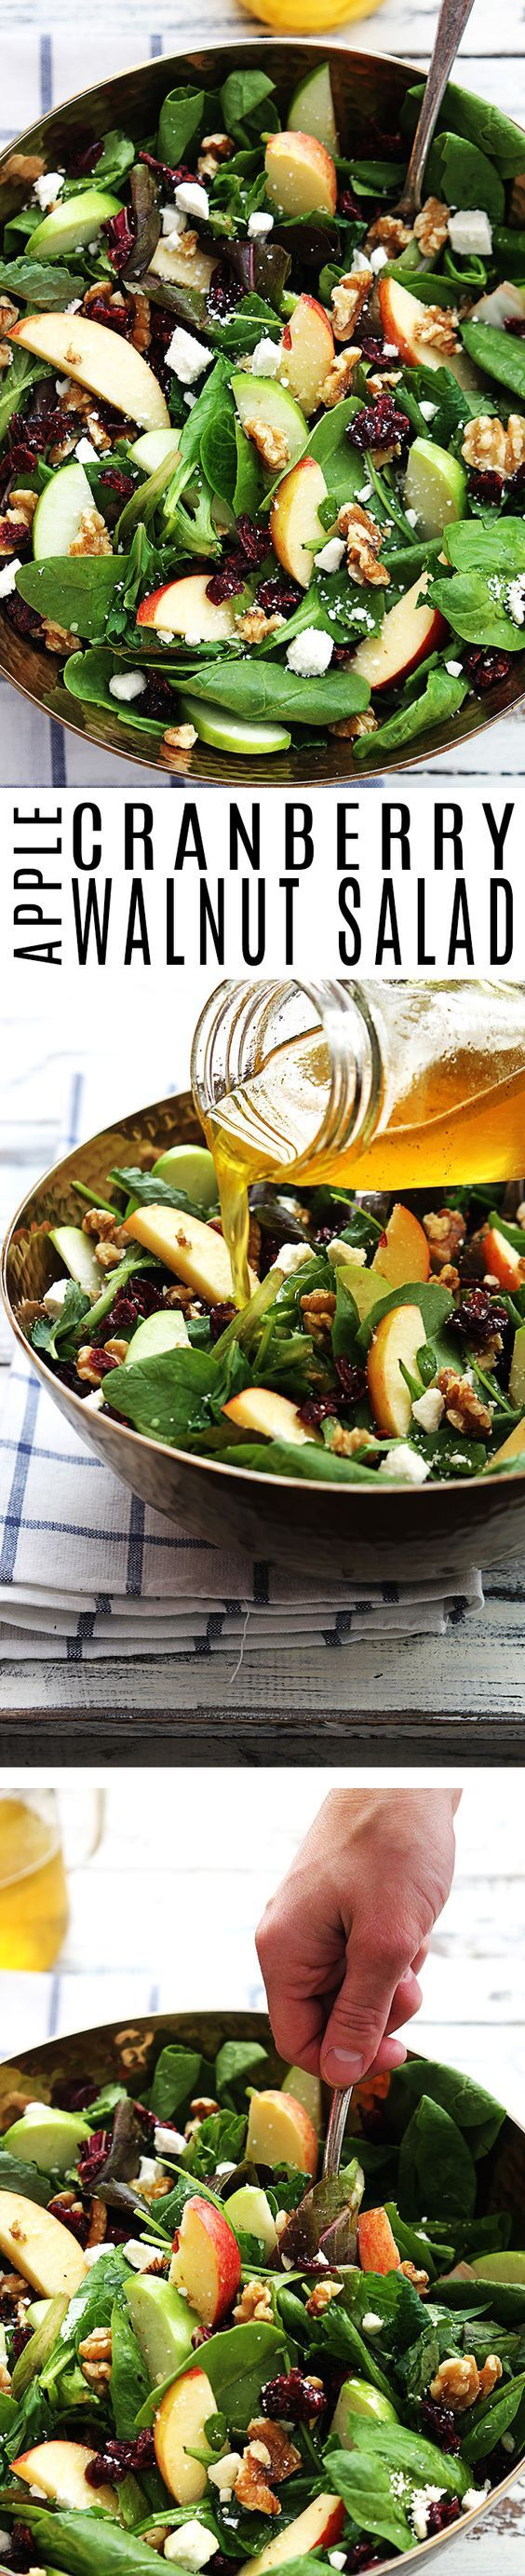 Apple Cranberry Walnut Salad                                                                                                                                                                                 More